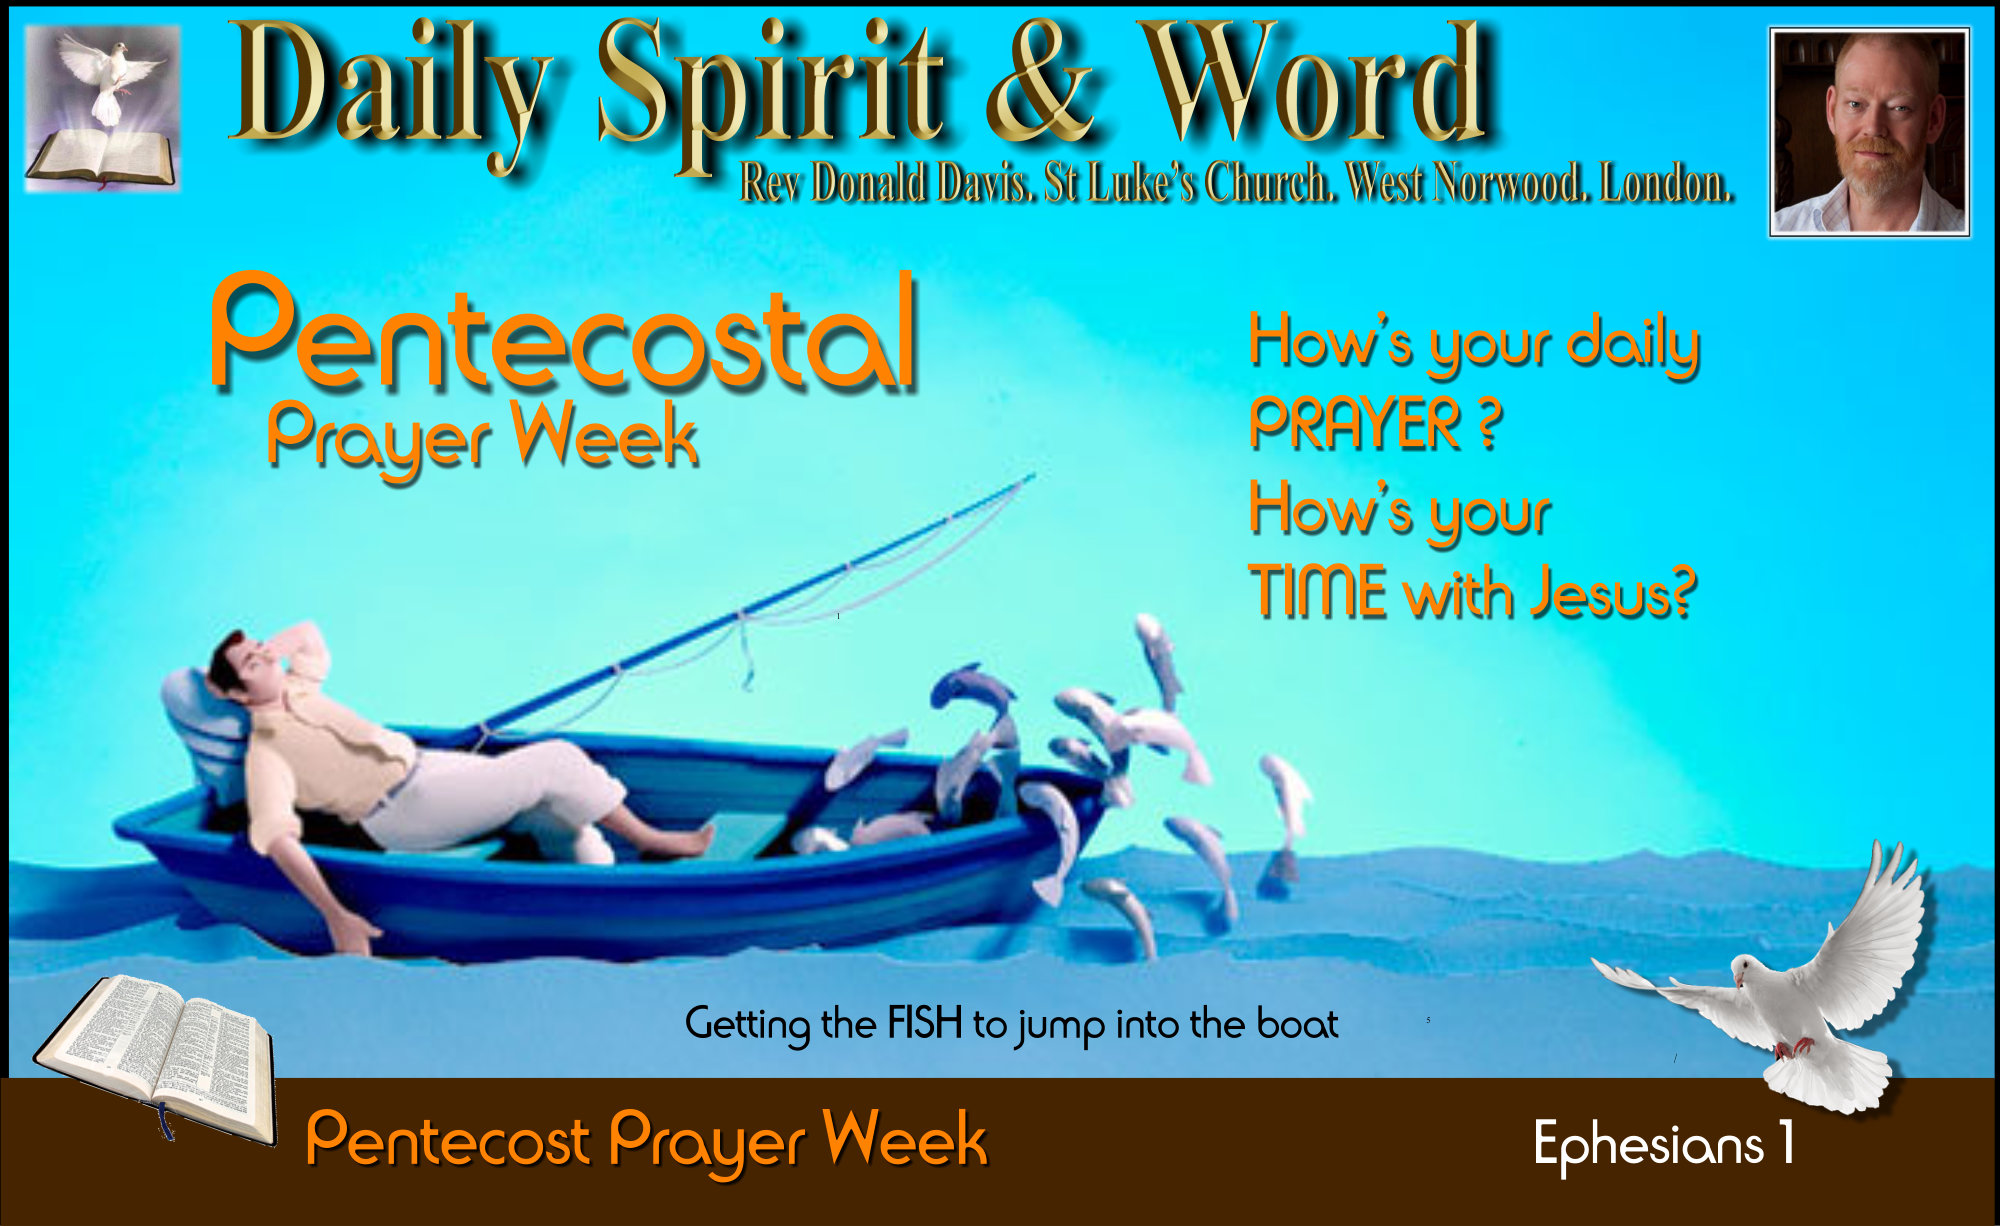 Pentecost Prayer Week, Time with Jesus every day